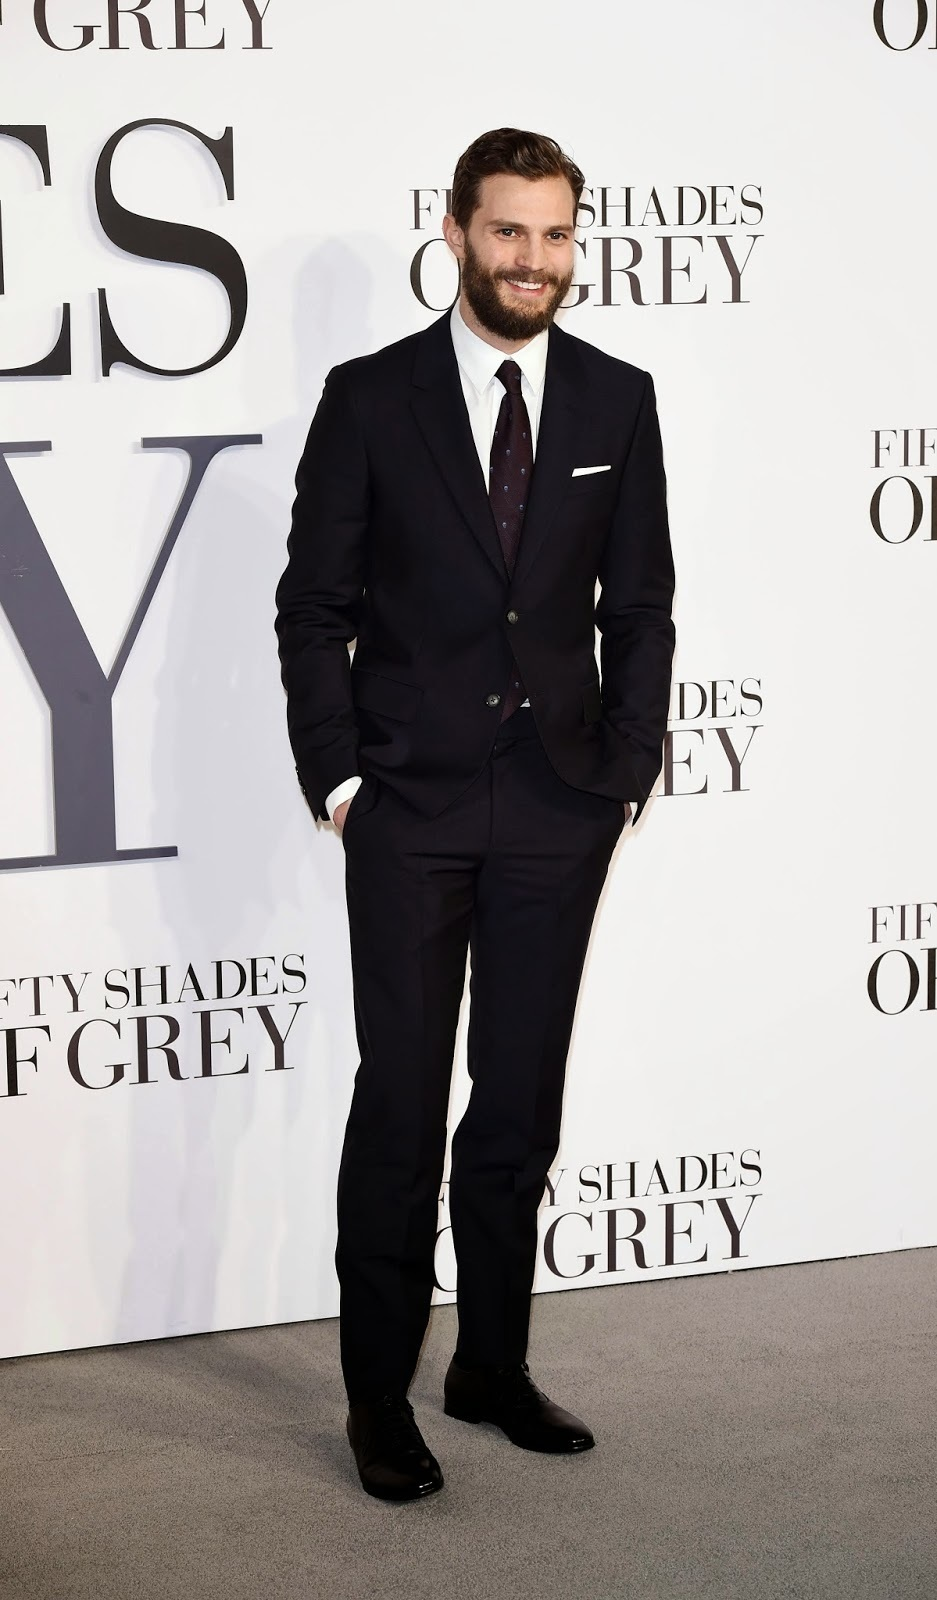 Jamie Dornan wearing Black Suit, White Dress Shirt, Black Leather